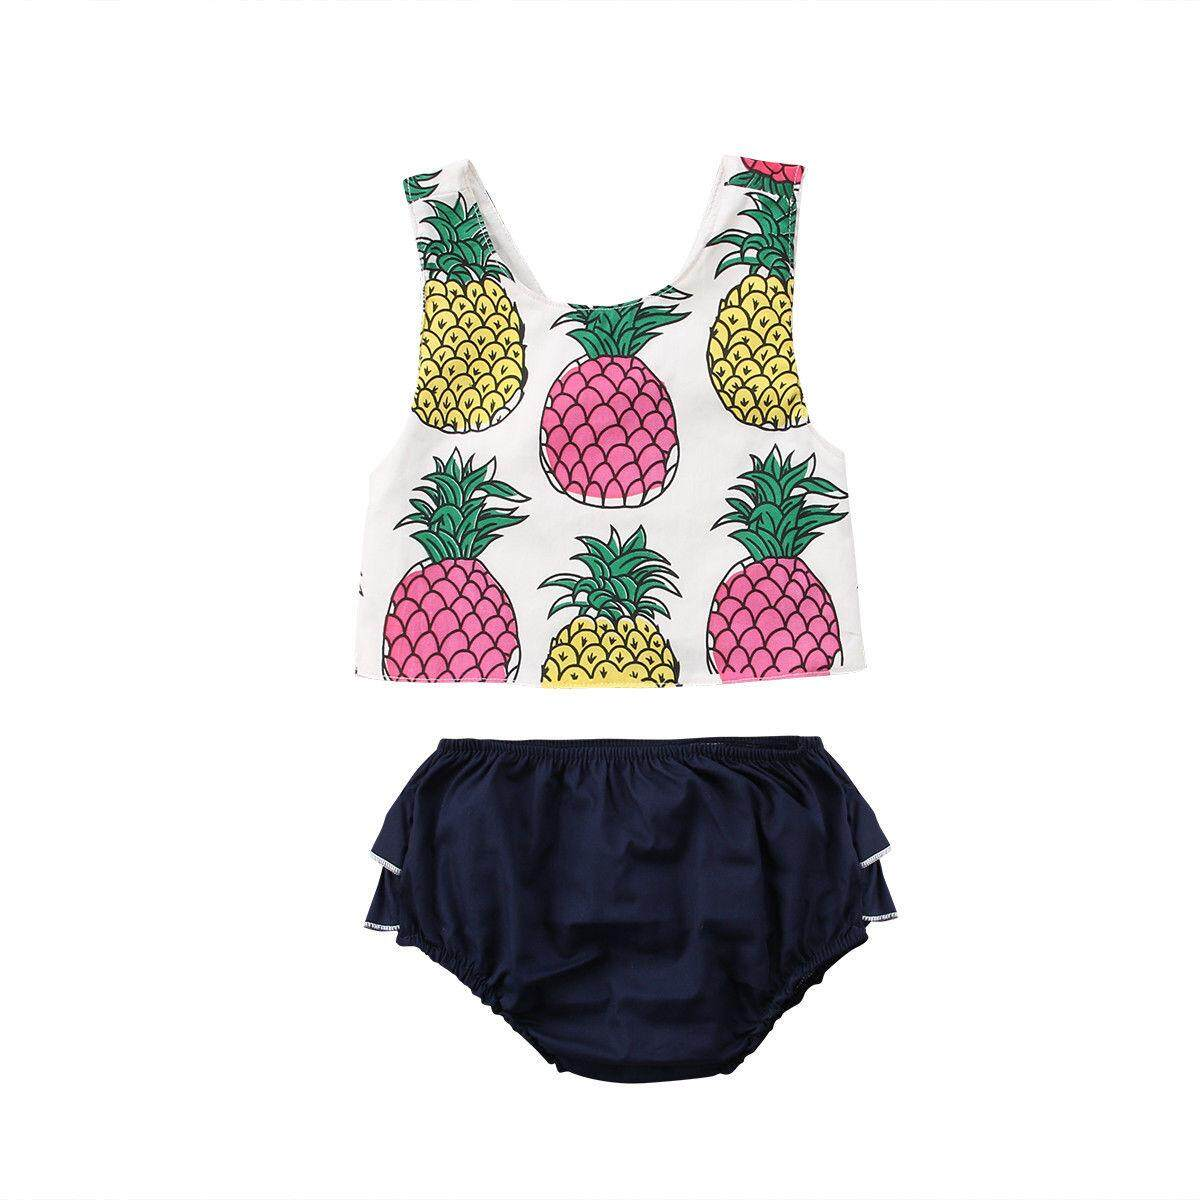 cd2d4cbf2 Fashion Baby Girls Summer Clothes Costume 2 Pieces Sleeveless Pineapple  Criss-cross Back Tank Tops